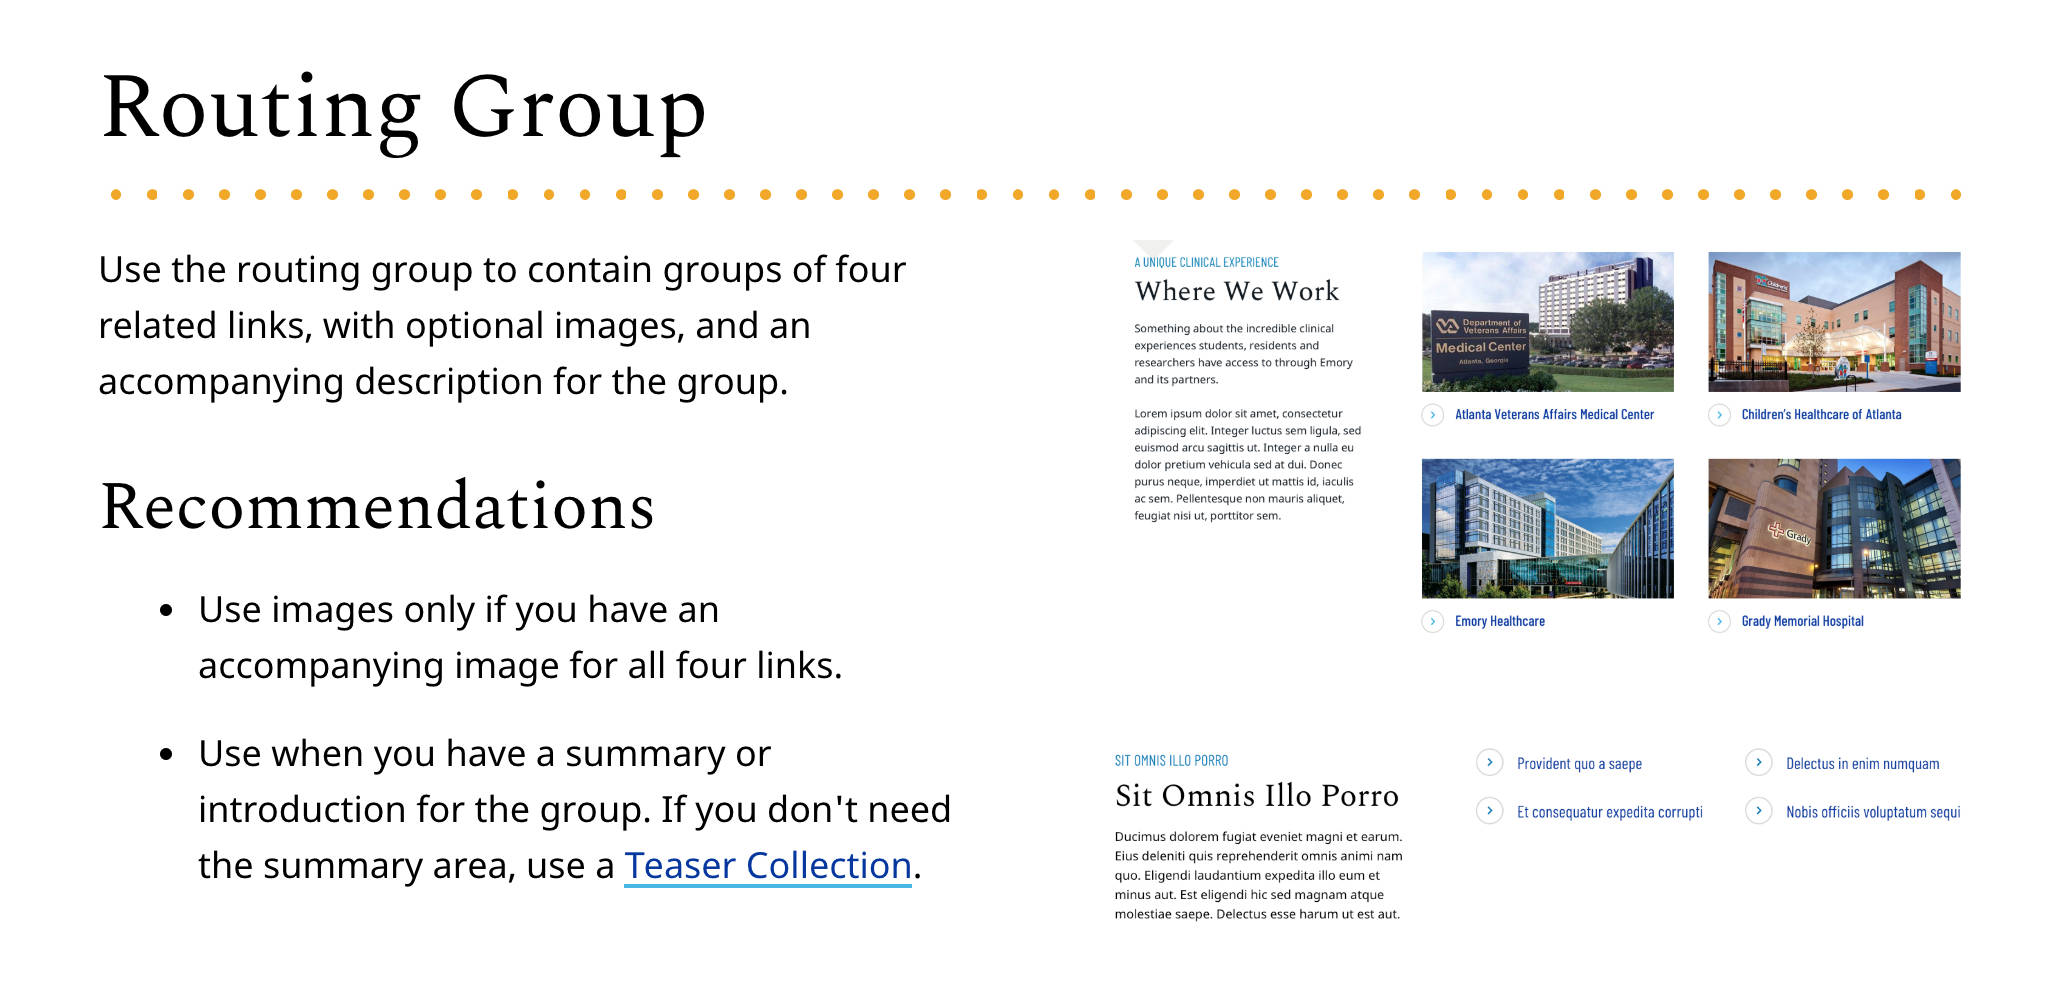 routing group from emory style guide